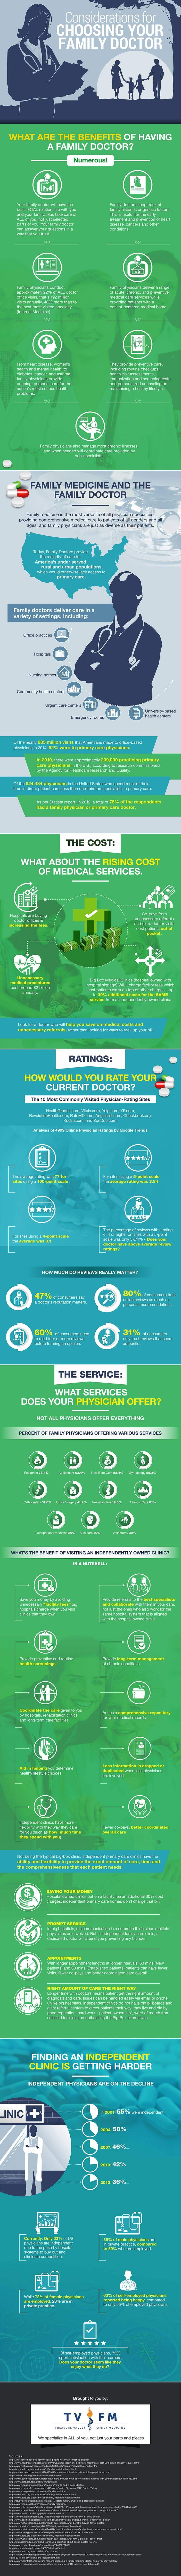 Why You Need a Family Doctor - Infographic